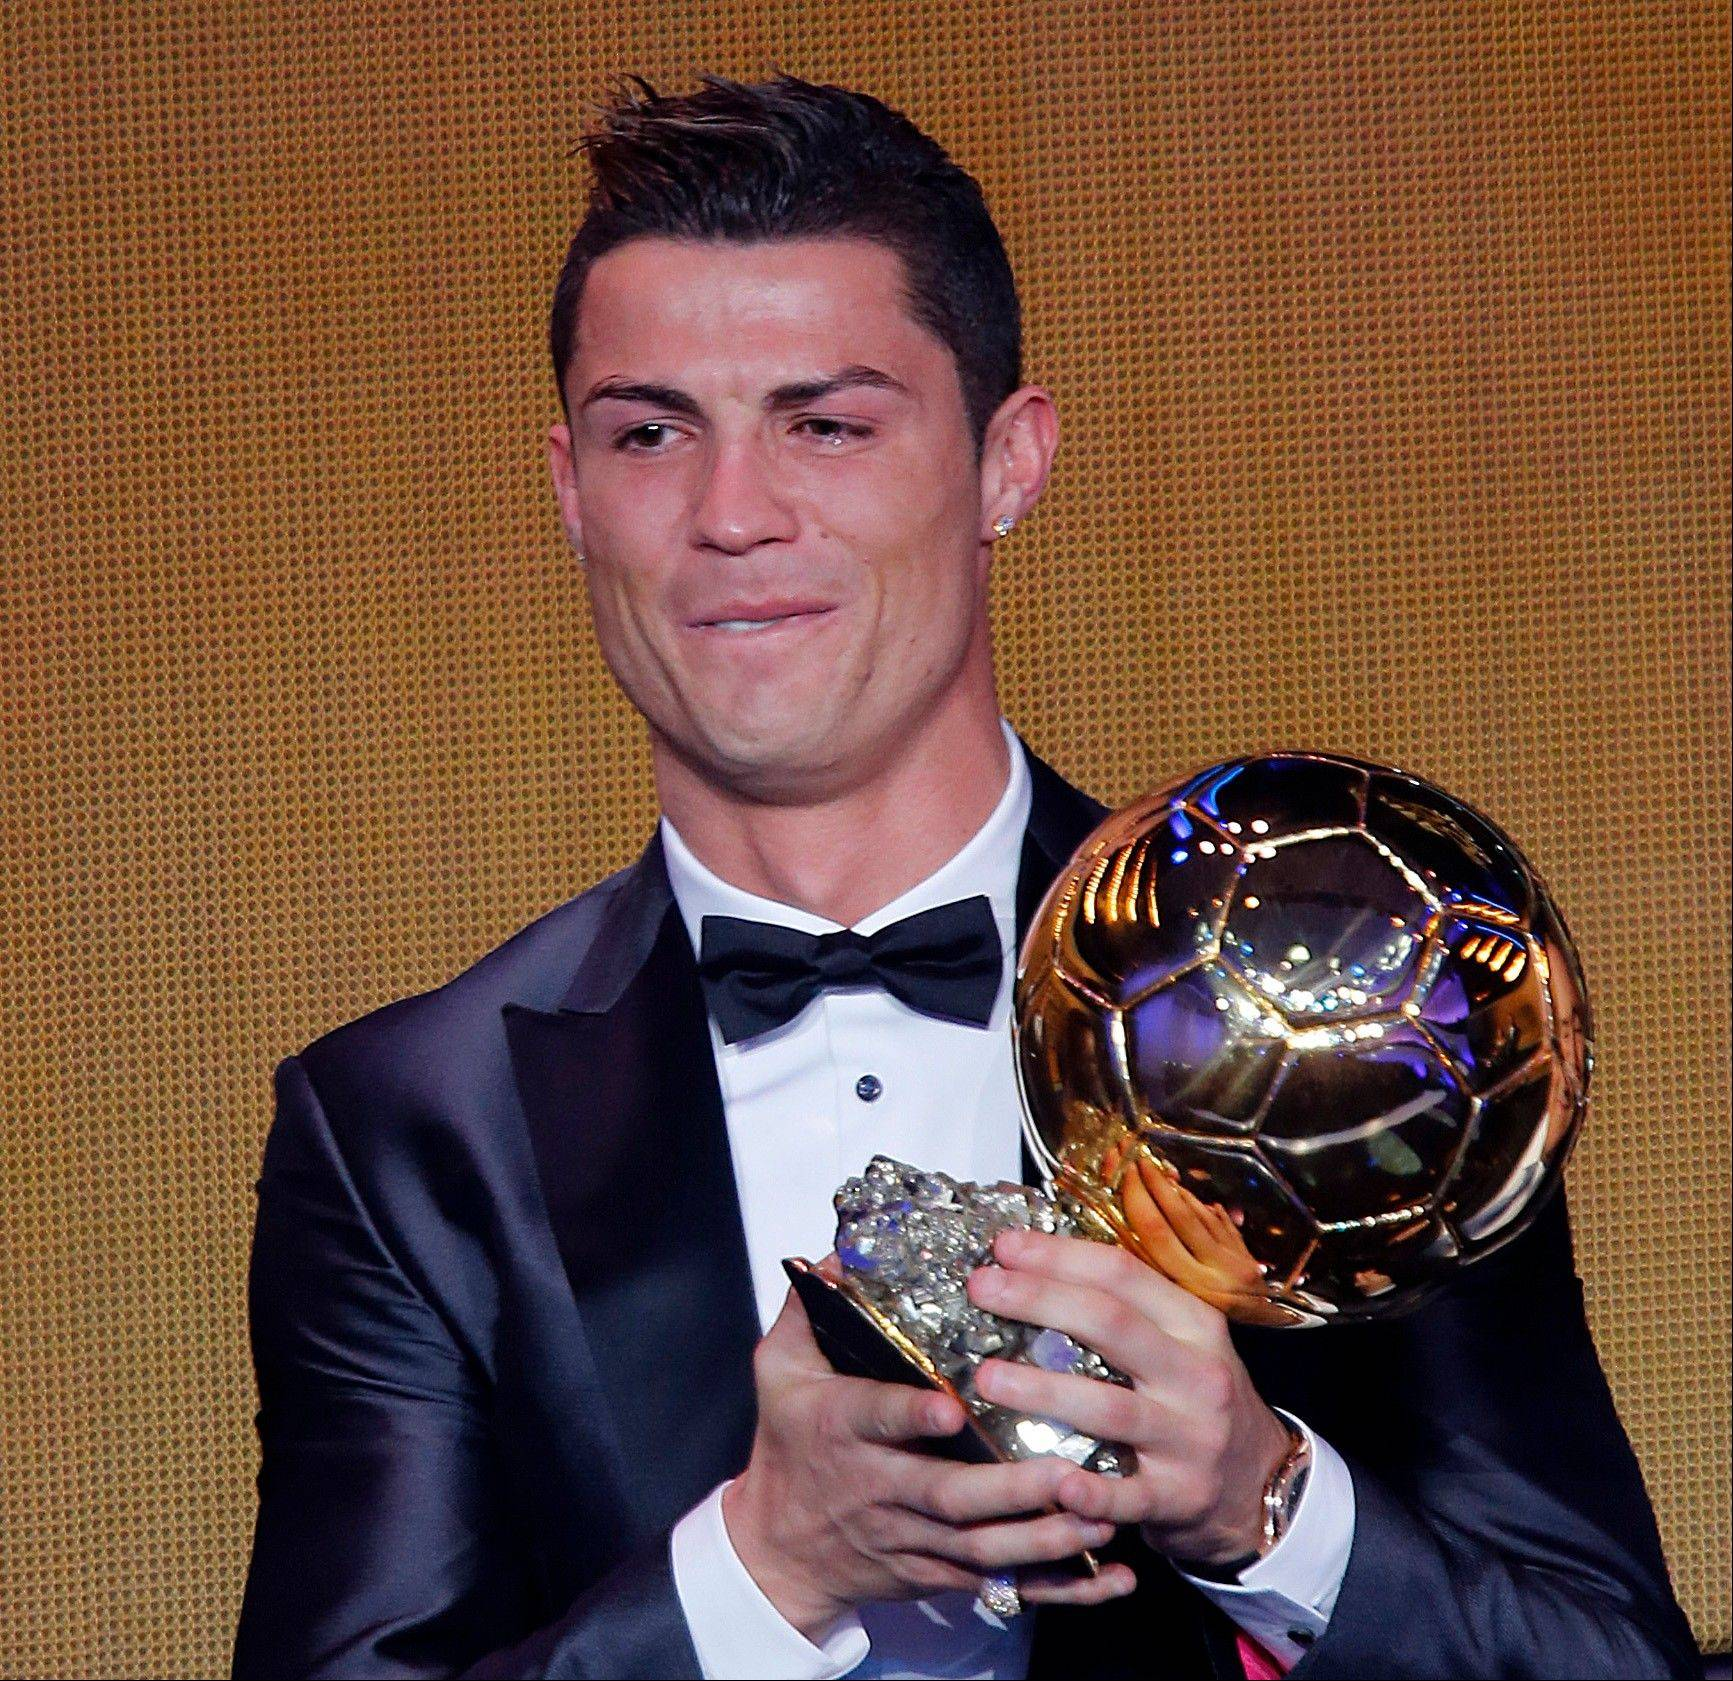 Real Madrid�s Cristiano Ronaldo of Portugal cries as he holds the trophy for world player of the year at the FIFA Ballon d�Or 2013 Gala in Zurich, Switzerland, Monday, Jan. 13, 2014.